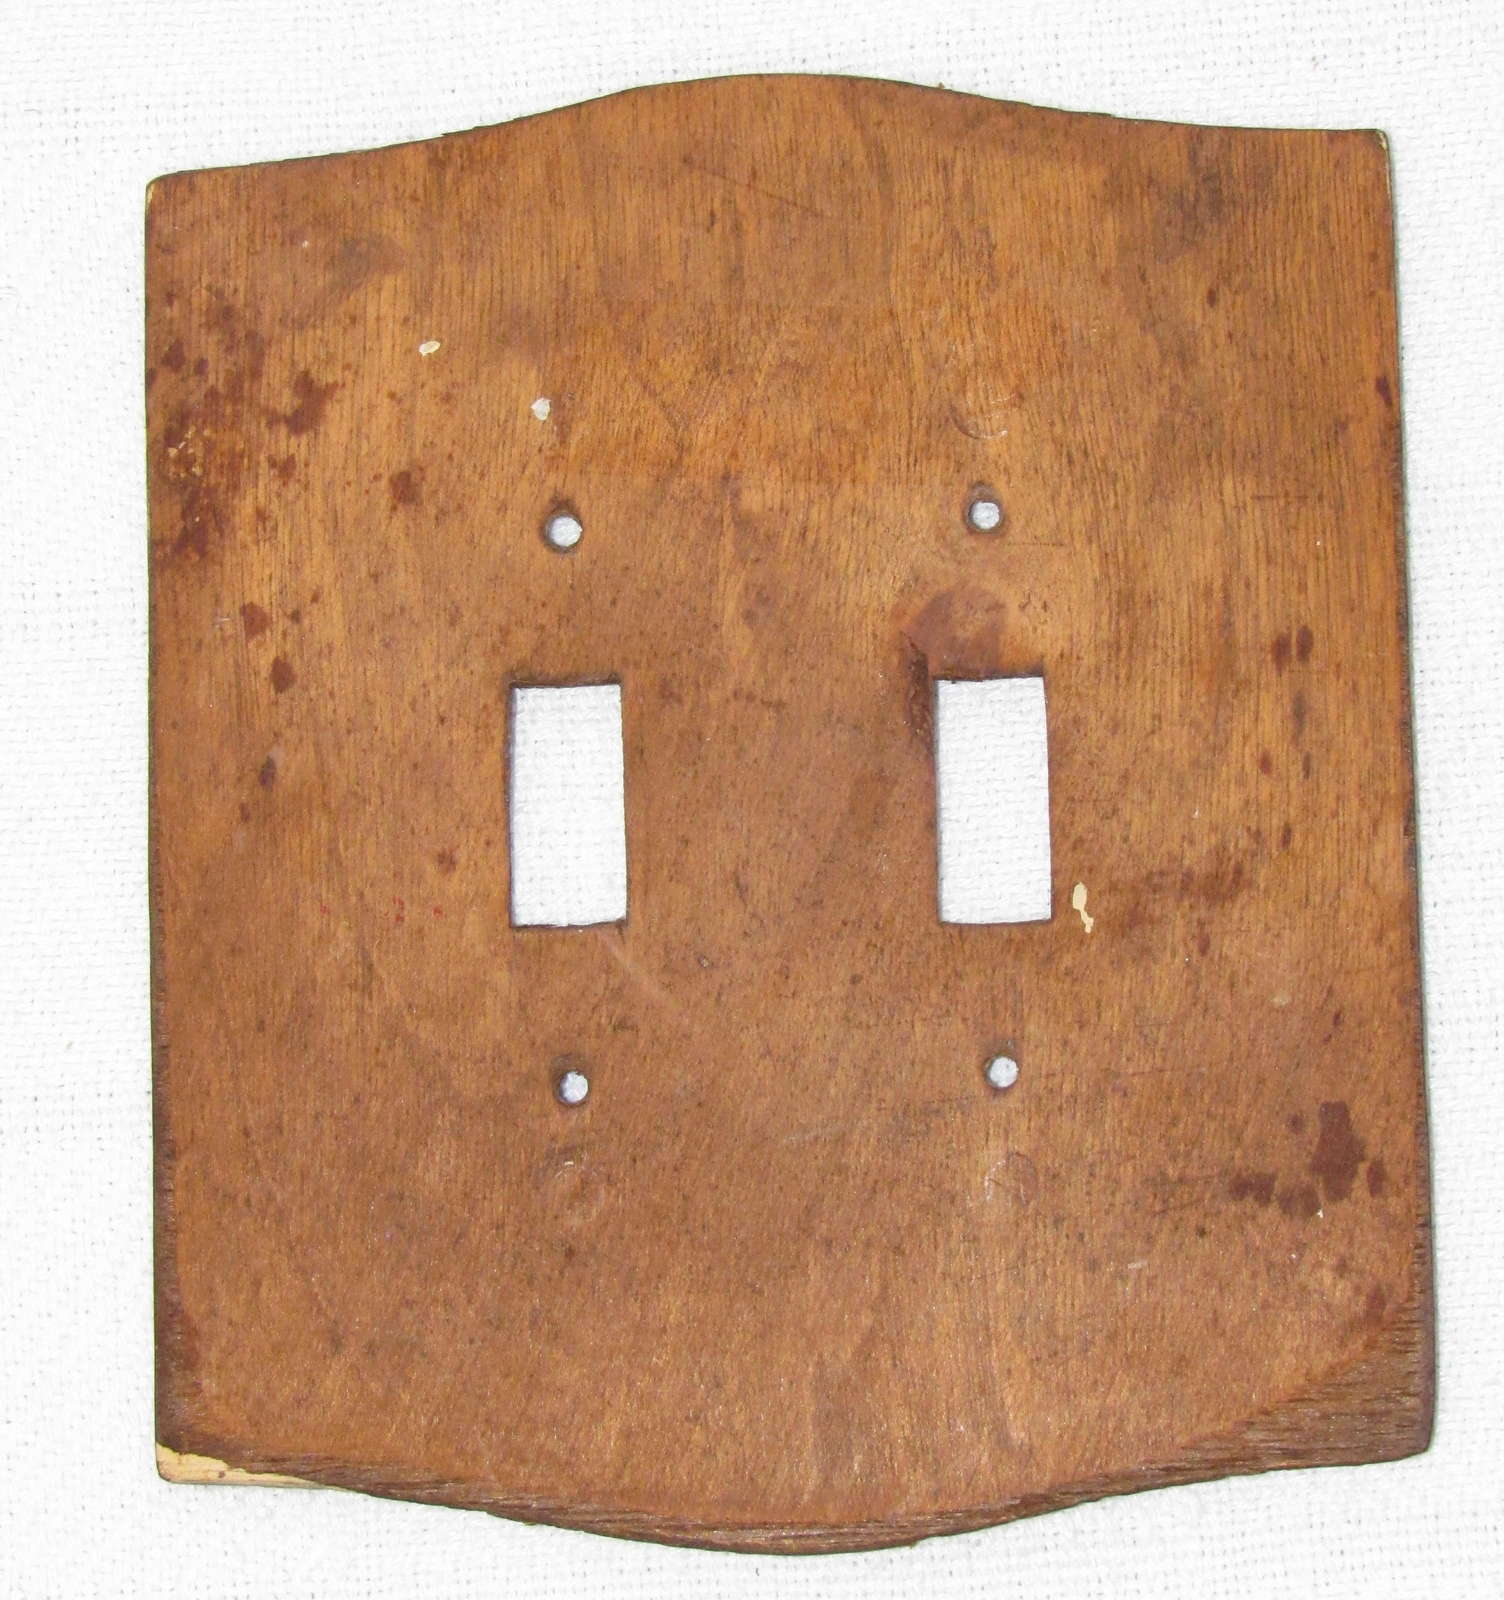 Carved wood double light switch cover rustic decor switch for Decor light switch